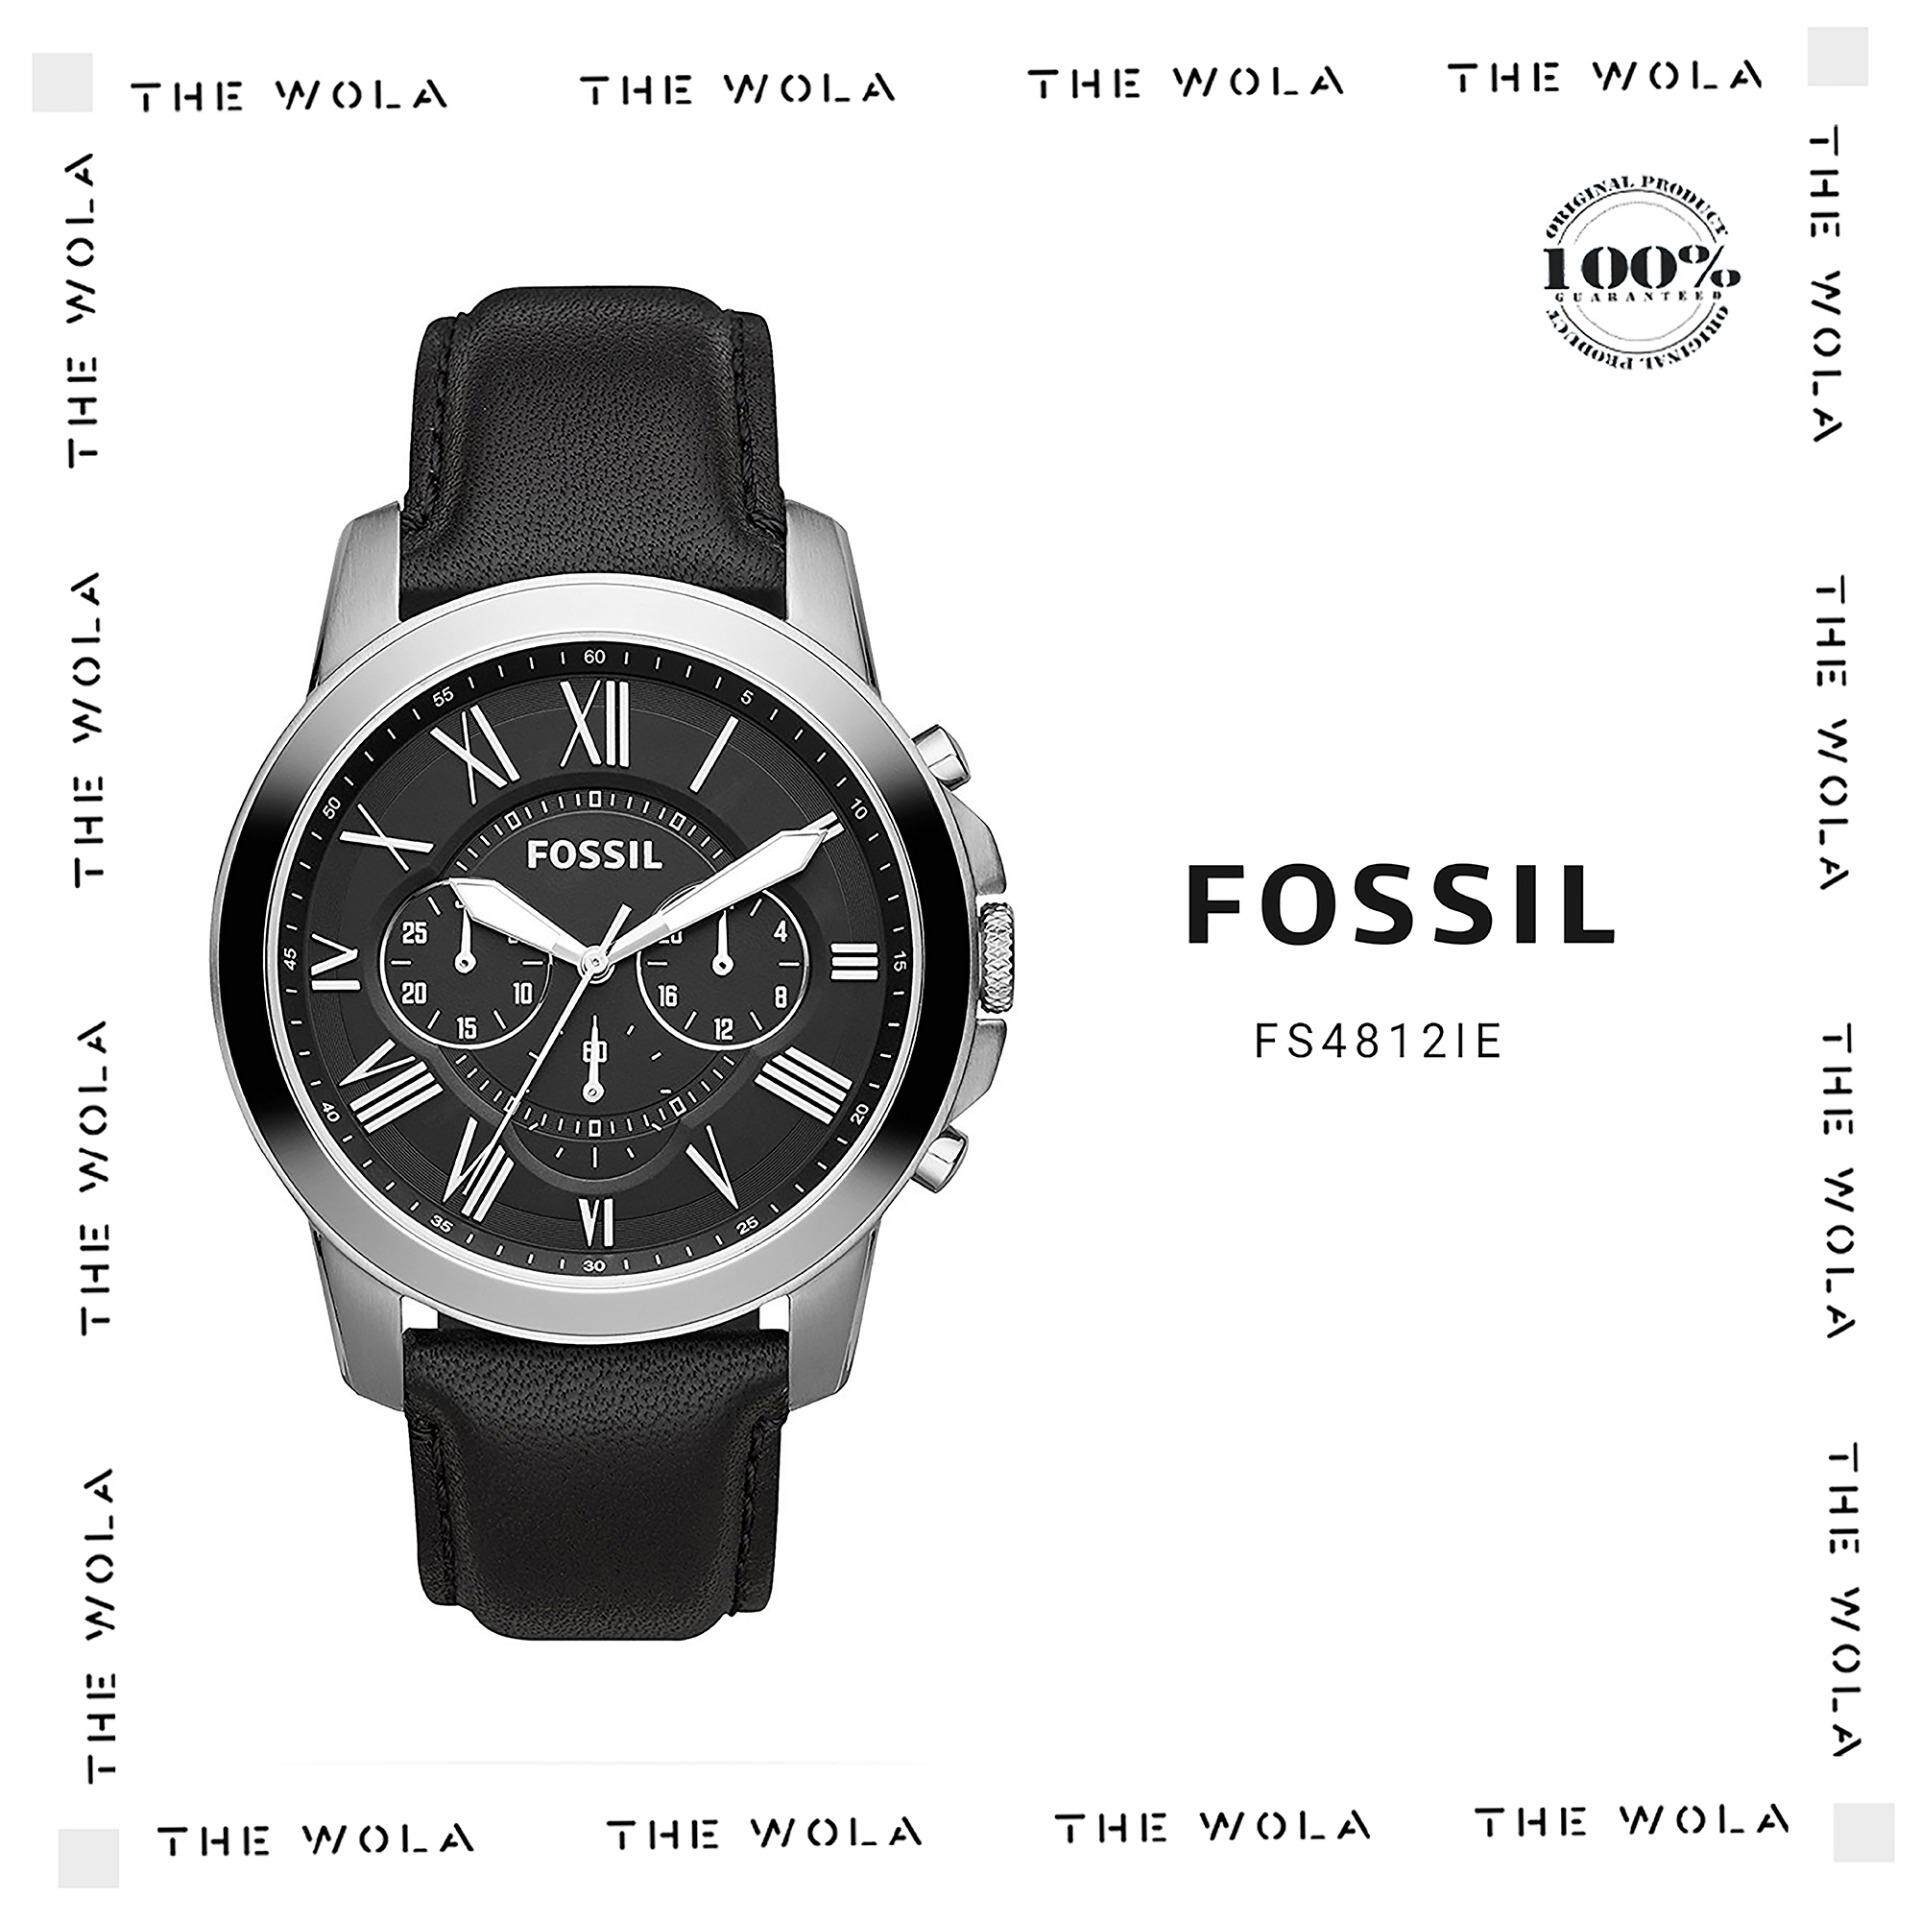 Fossil Products For Men Women The Best Price In Malaysia Fs5118 Jam Tangan Pria Original Casual Watch Fs4812ie Genuine 2 Years Warranty